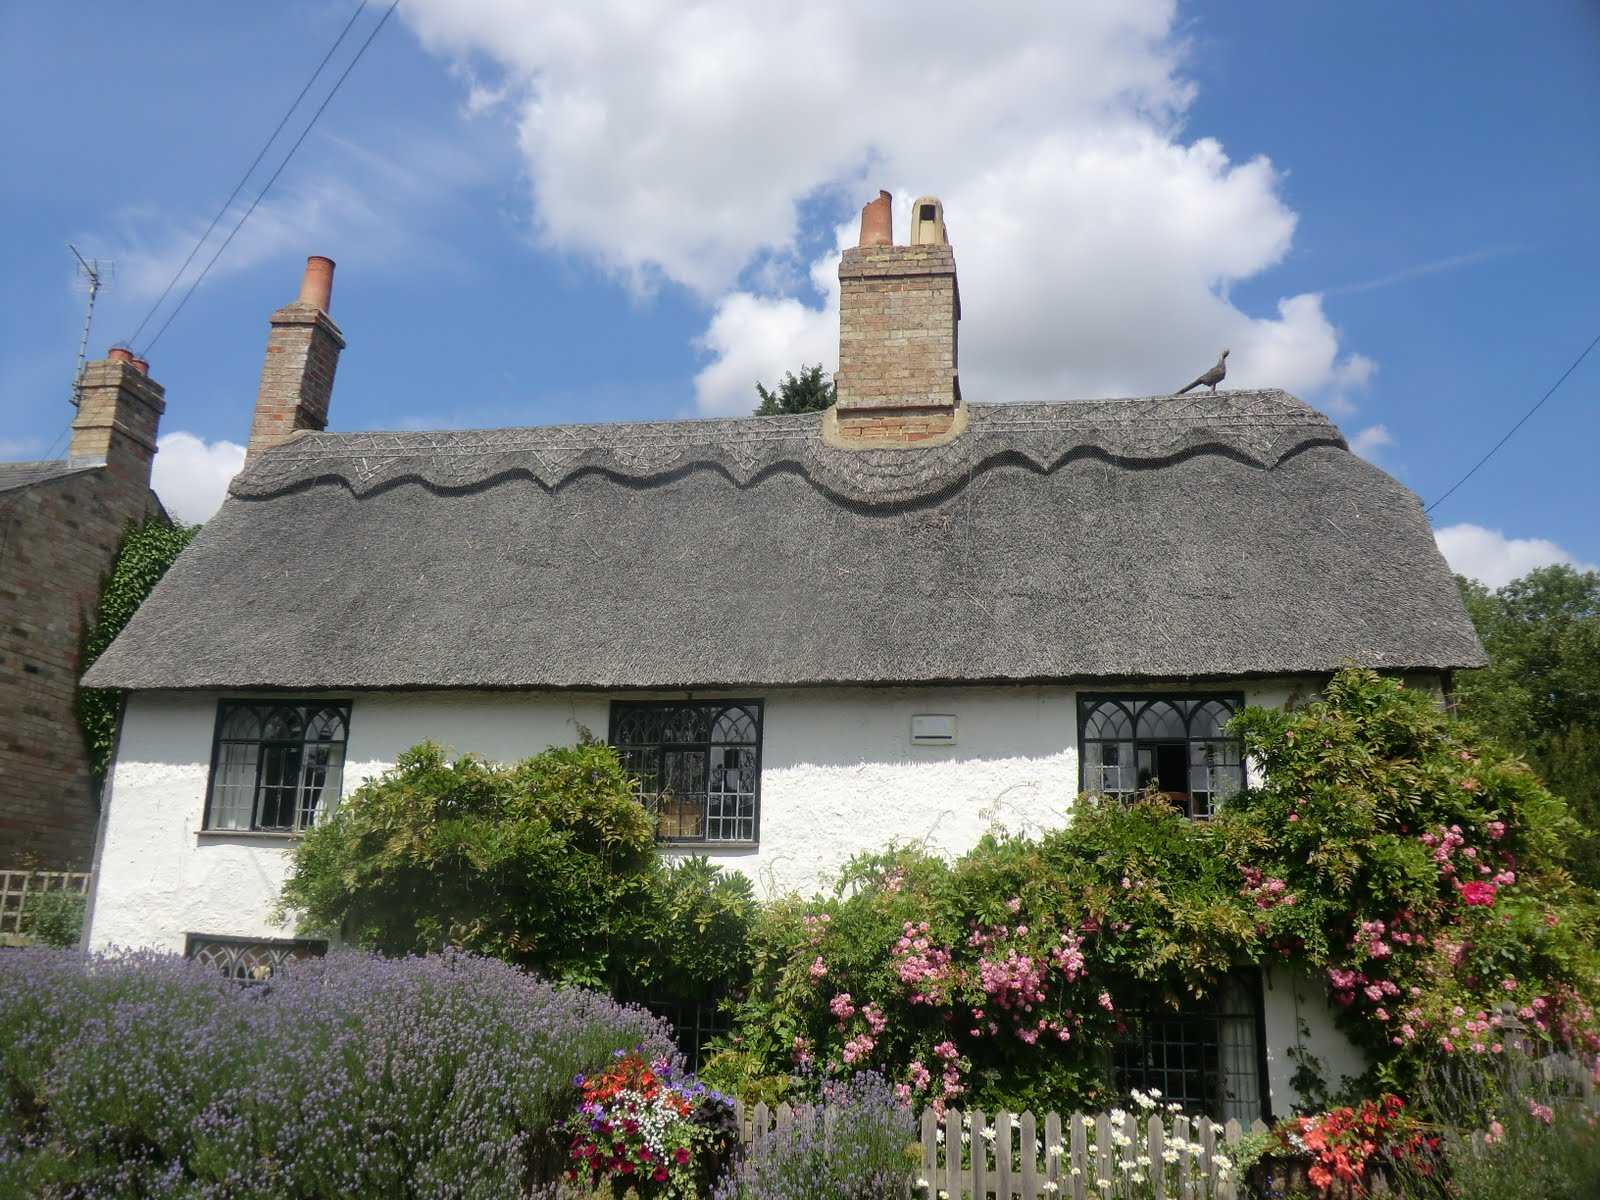 CIMG8914 Cottage, Hemingford Abbots